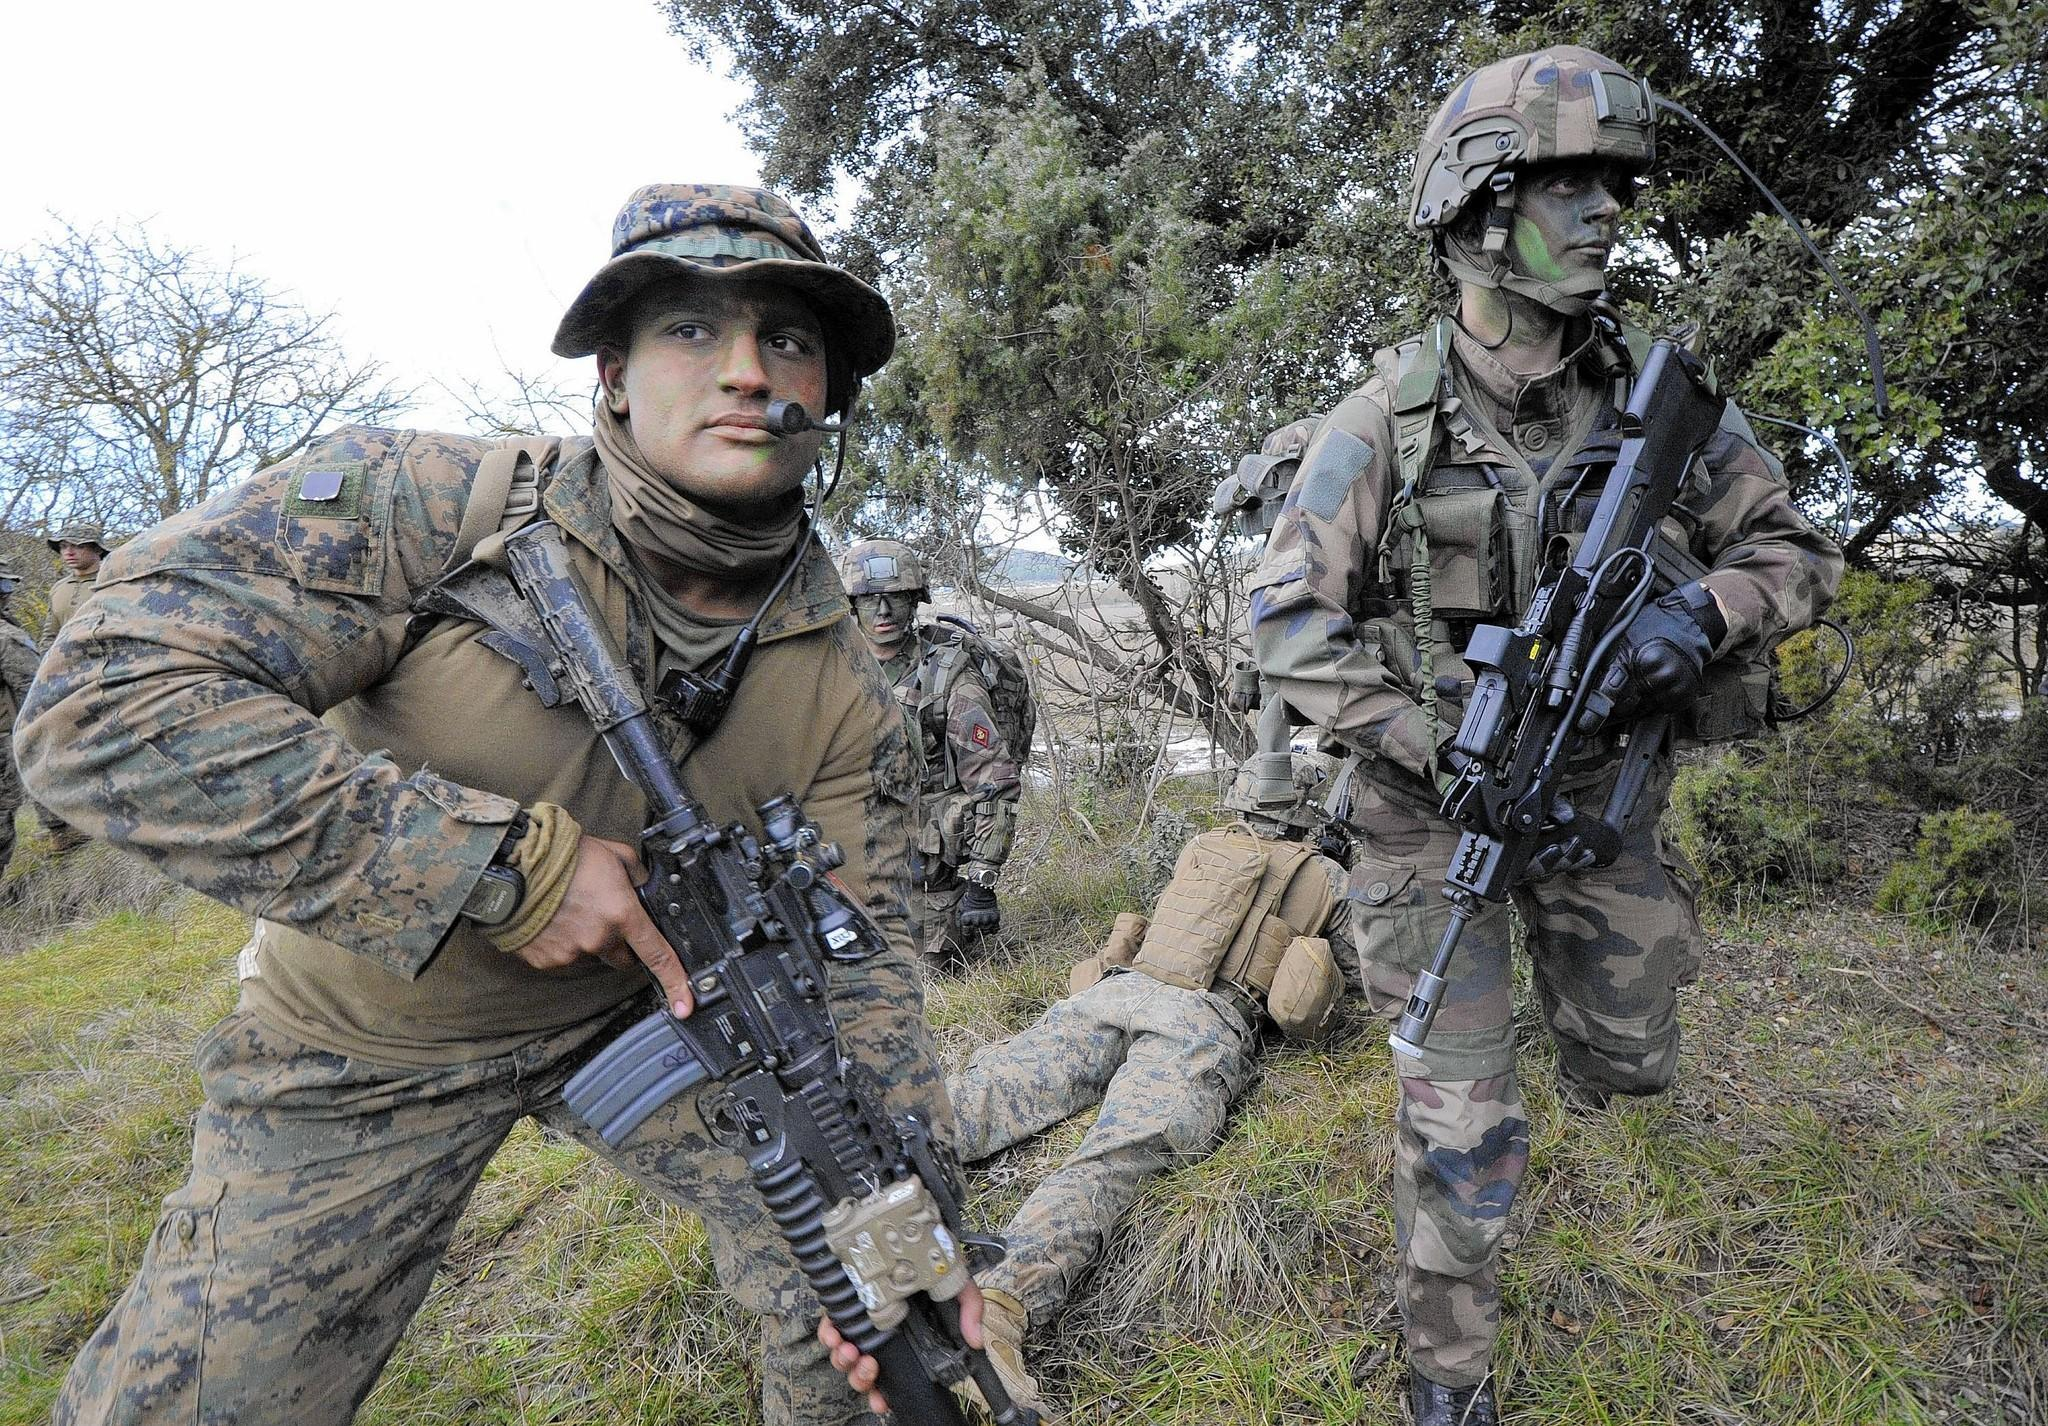 A U.S. Marine, left, in the Special Purpose Marine Air Ground Task Force for Crisis Response, and a French marine take part in a training exercise in southern France. The U.S. force responds to crises in Africa.